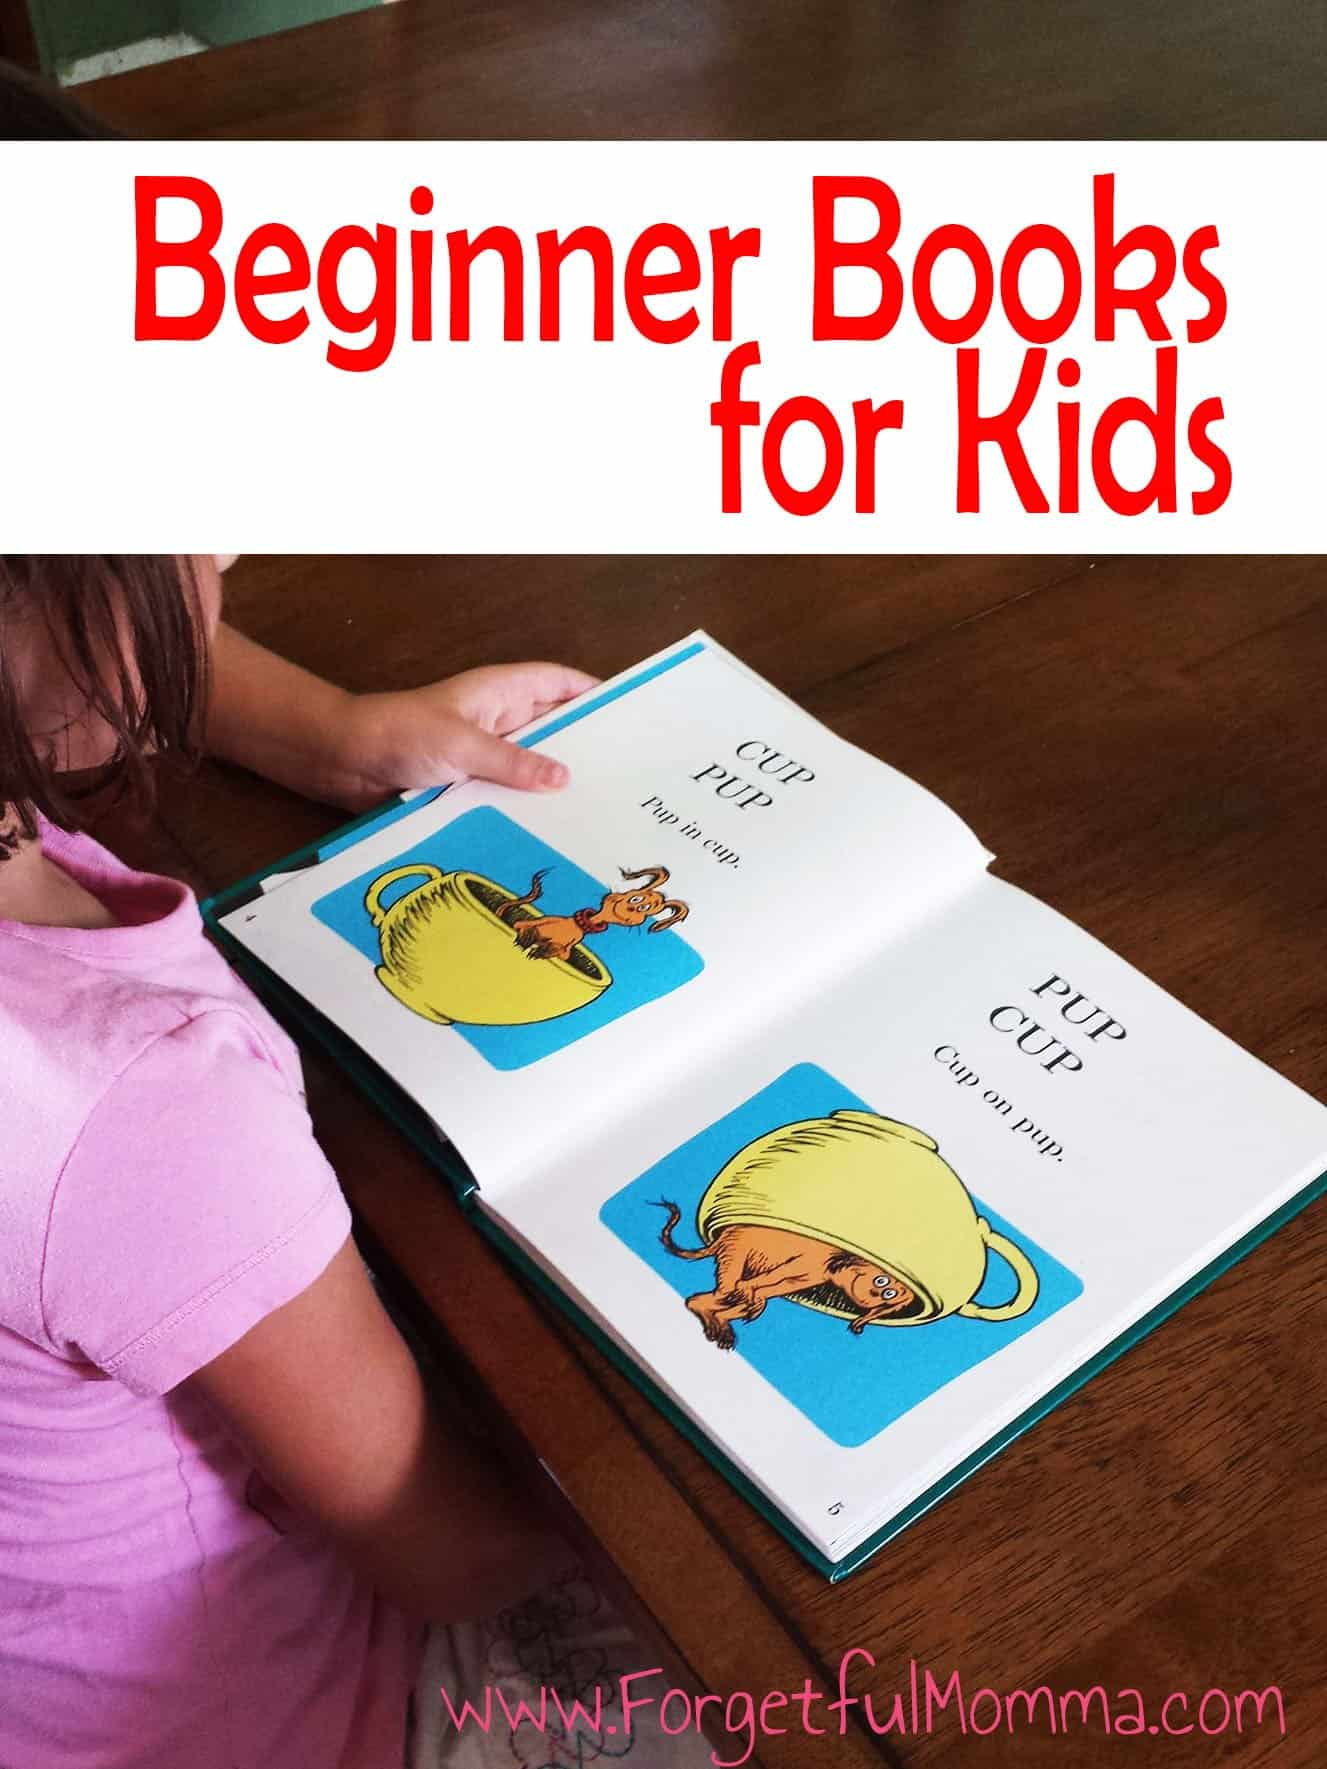 Beginner Books for Kids – I Can Read